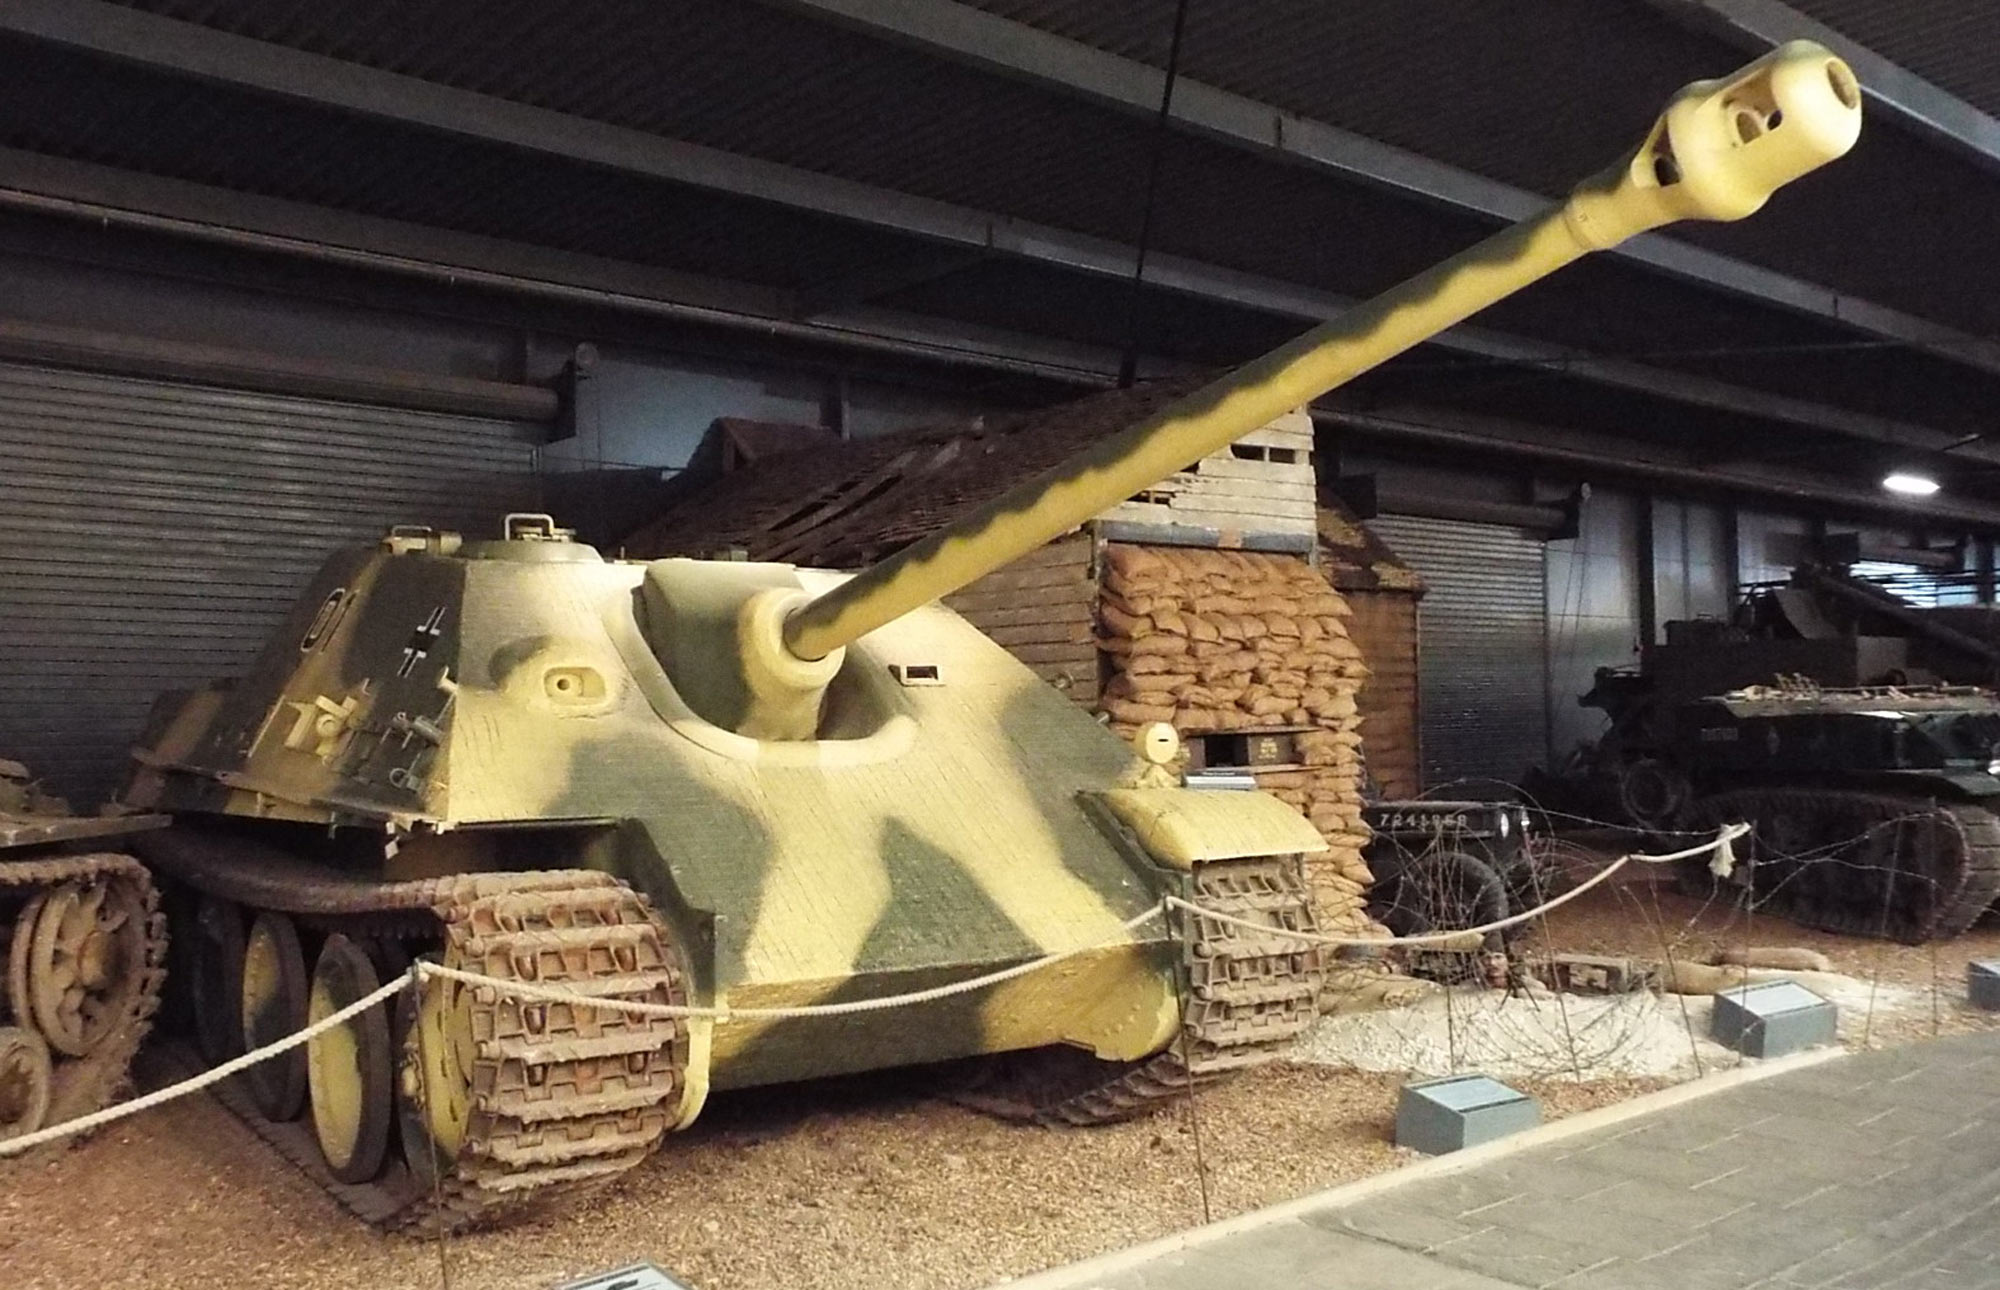 Lord Griffiths MC's Jagdpanther in the Land Warfare Hanger at the Imperial War Museum Duxford